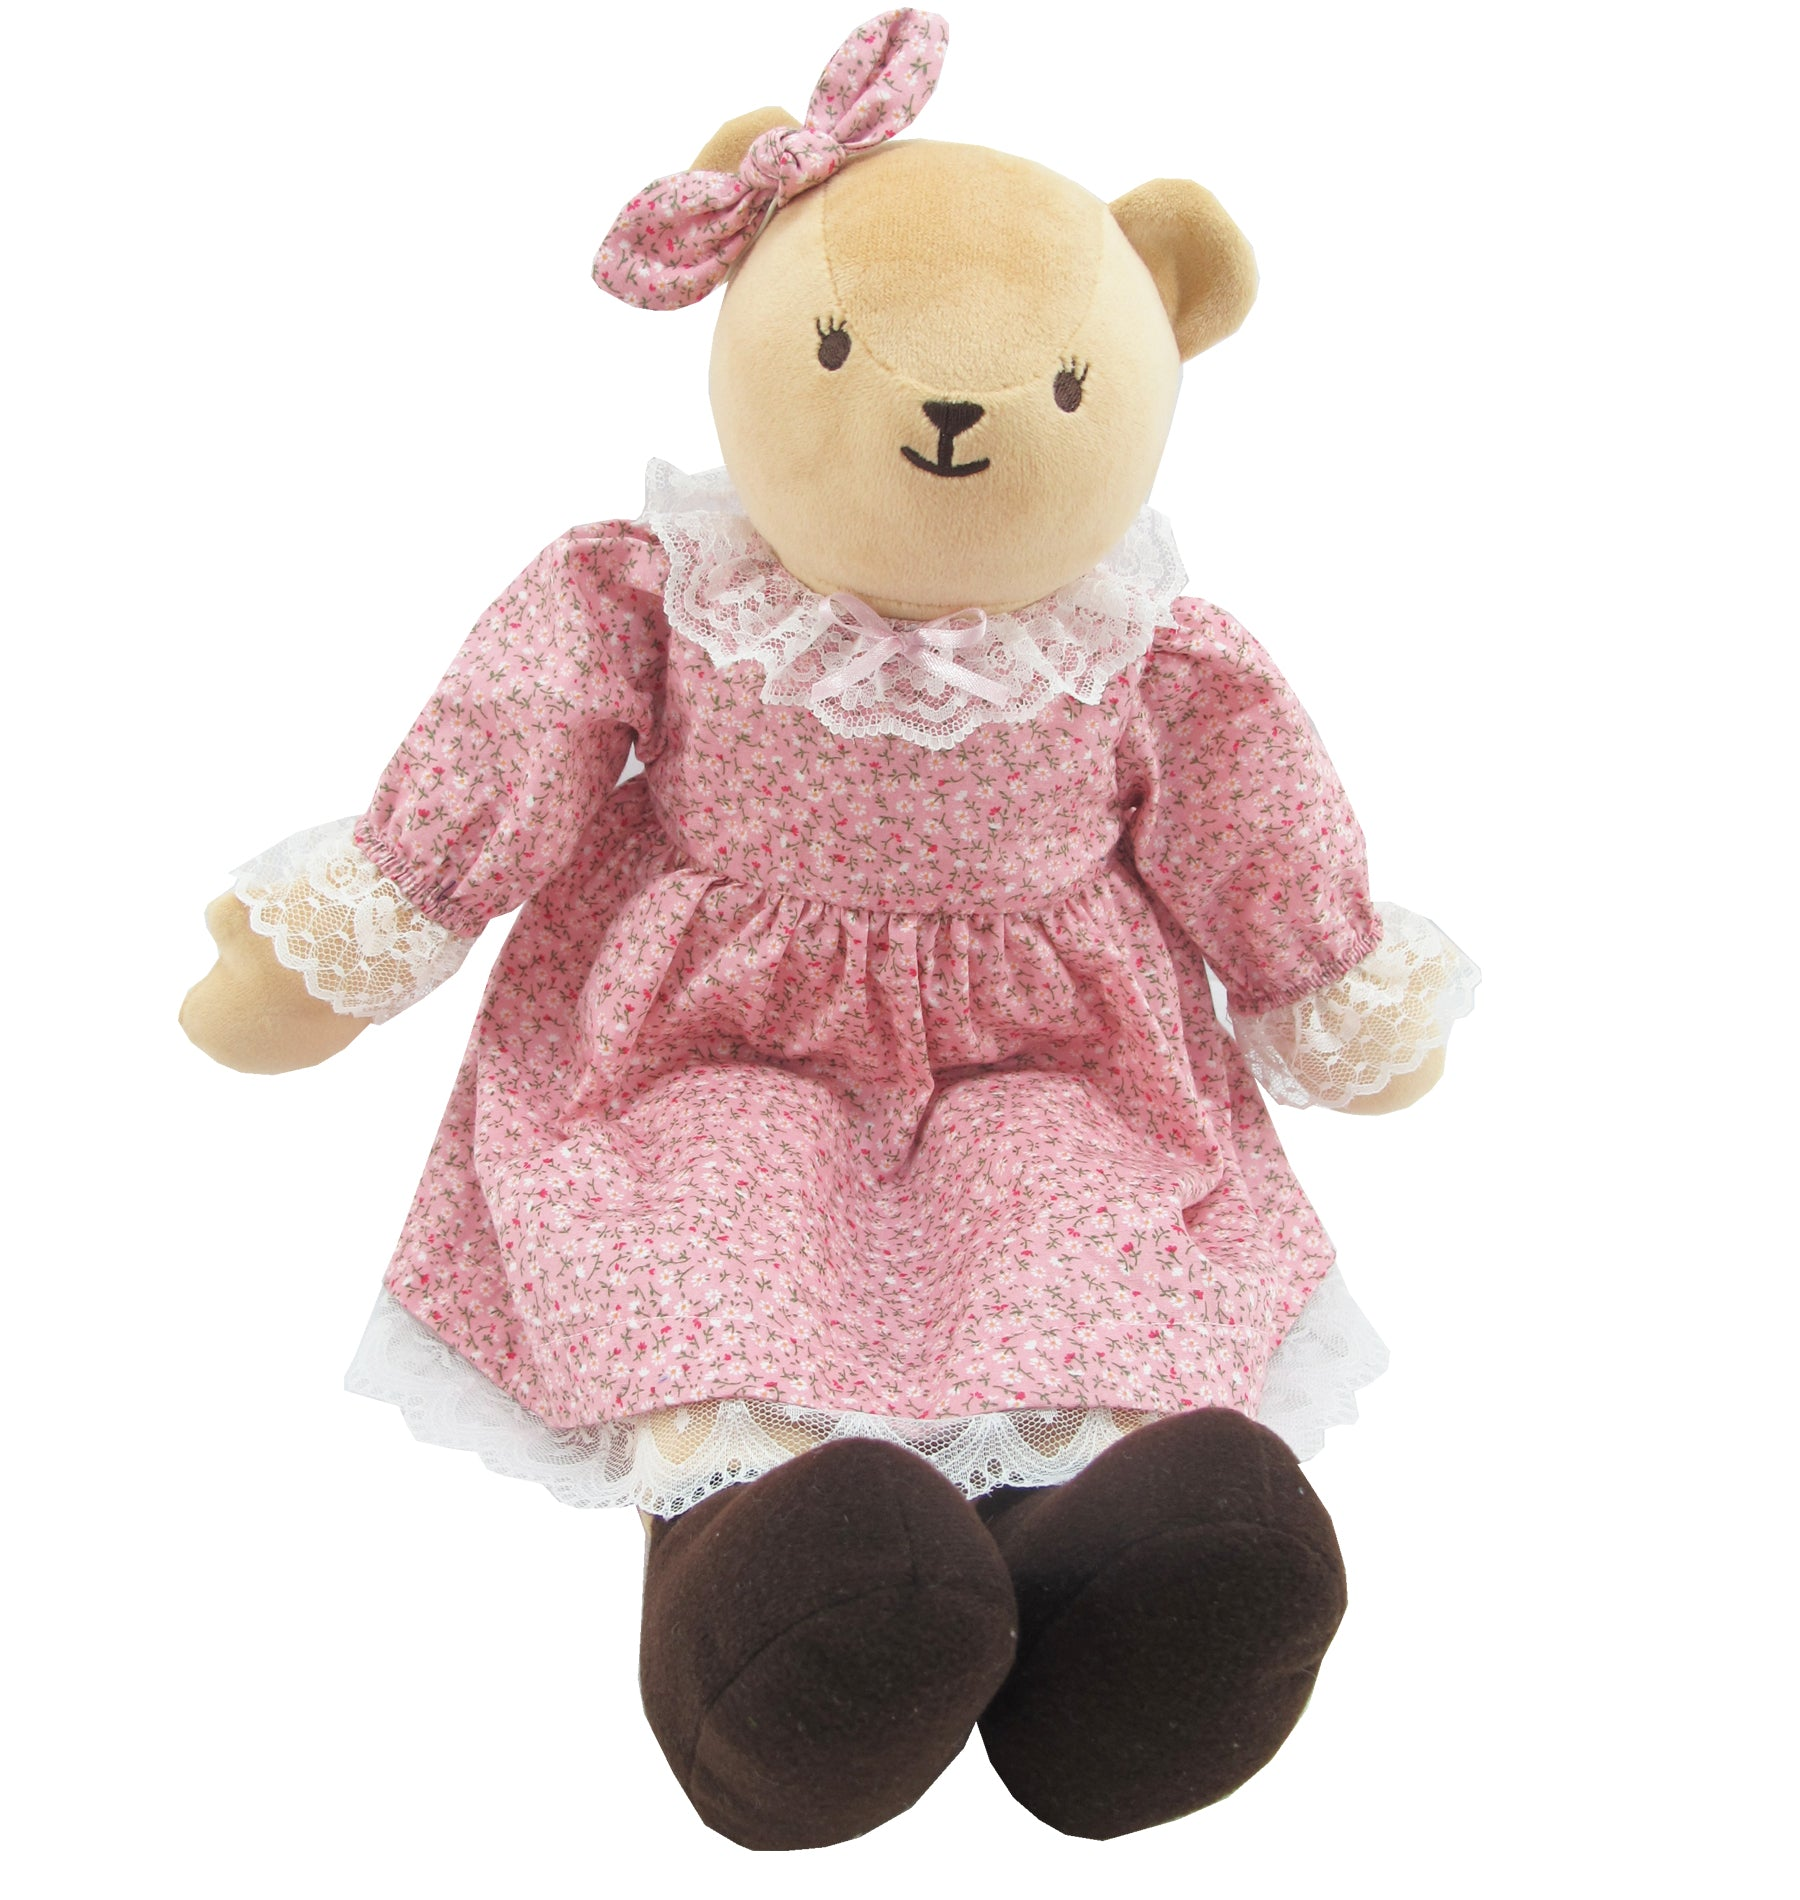 BEAR WITH OUTFITS GIRL 16 INCHI M COLLECTION